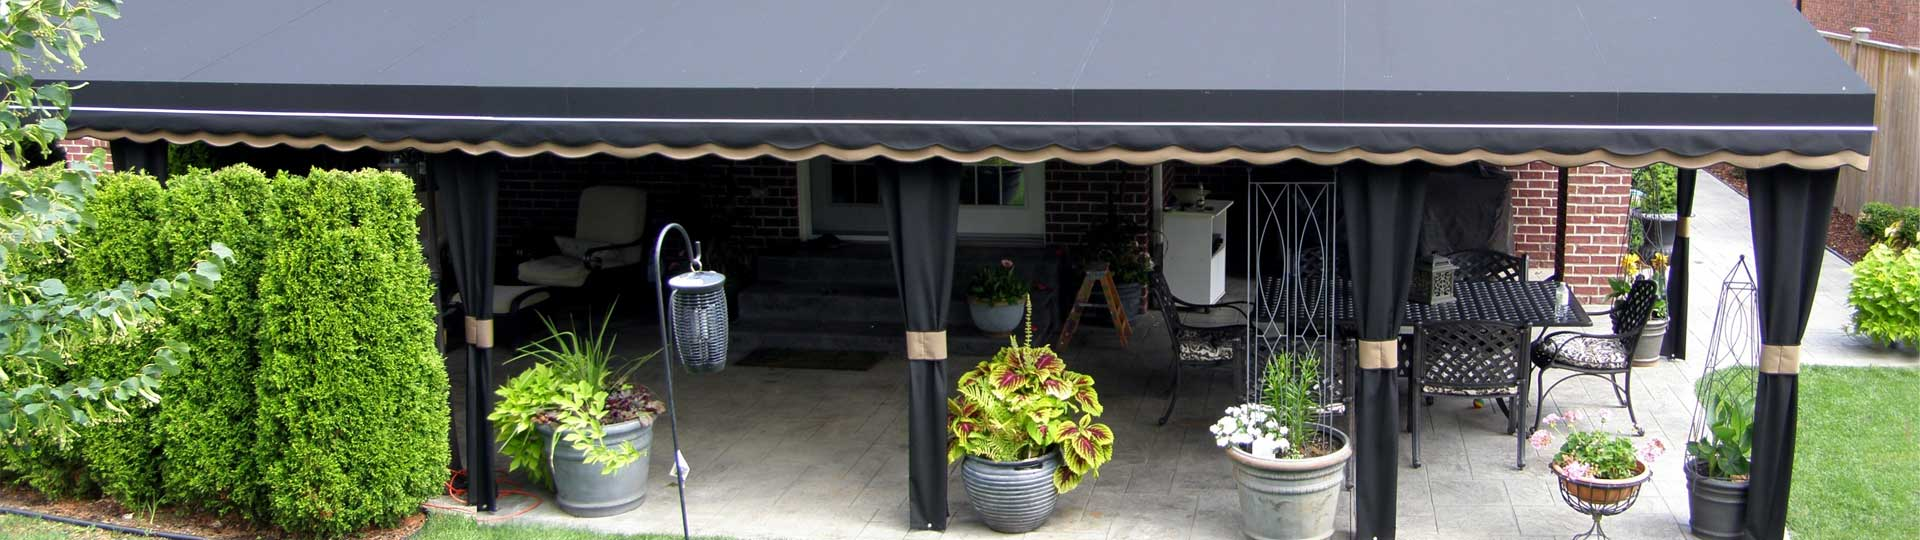 patio awnings windsor custom patio awnings chatham and